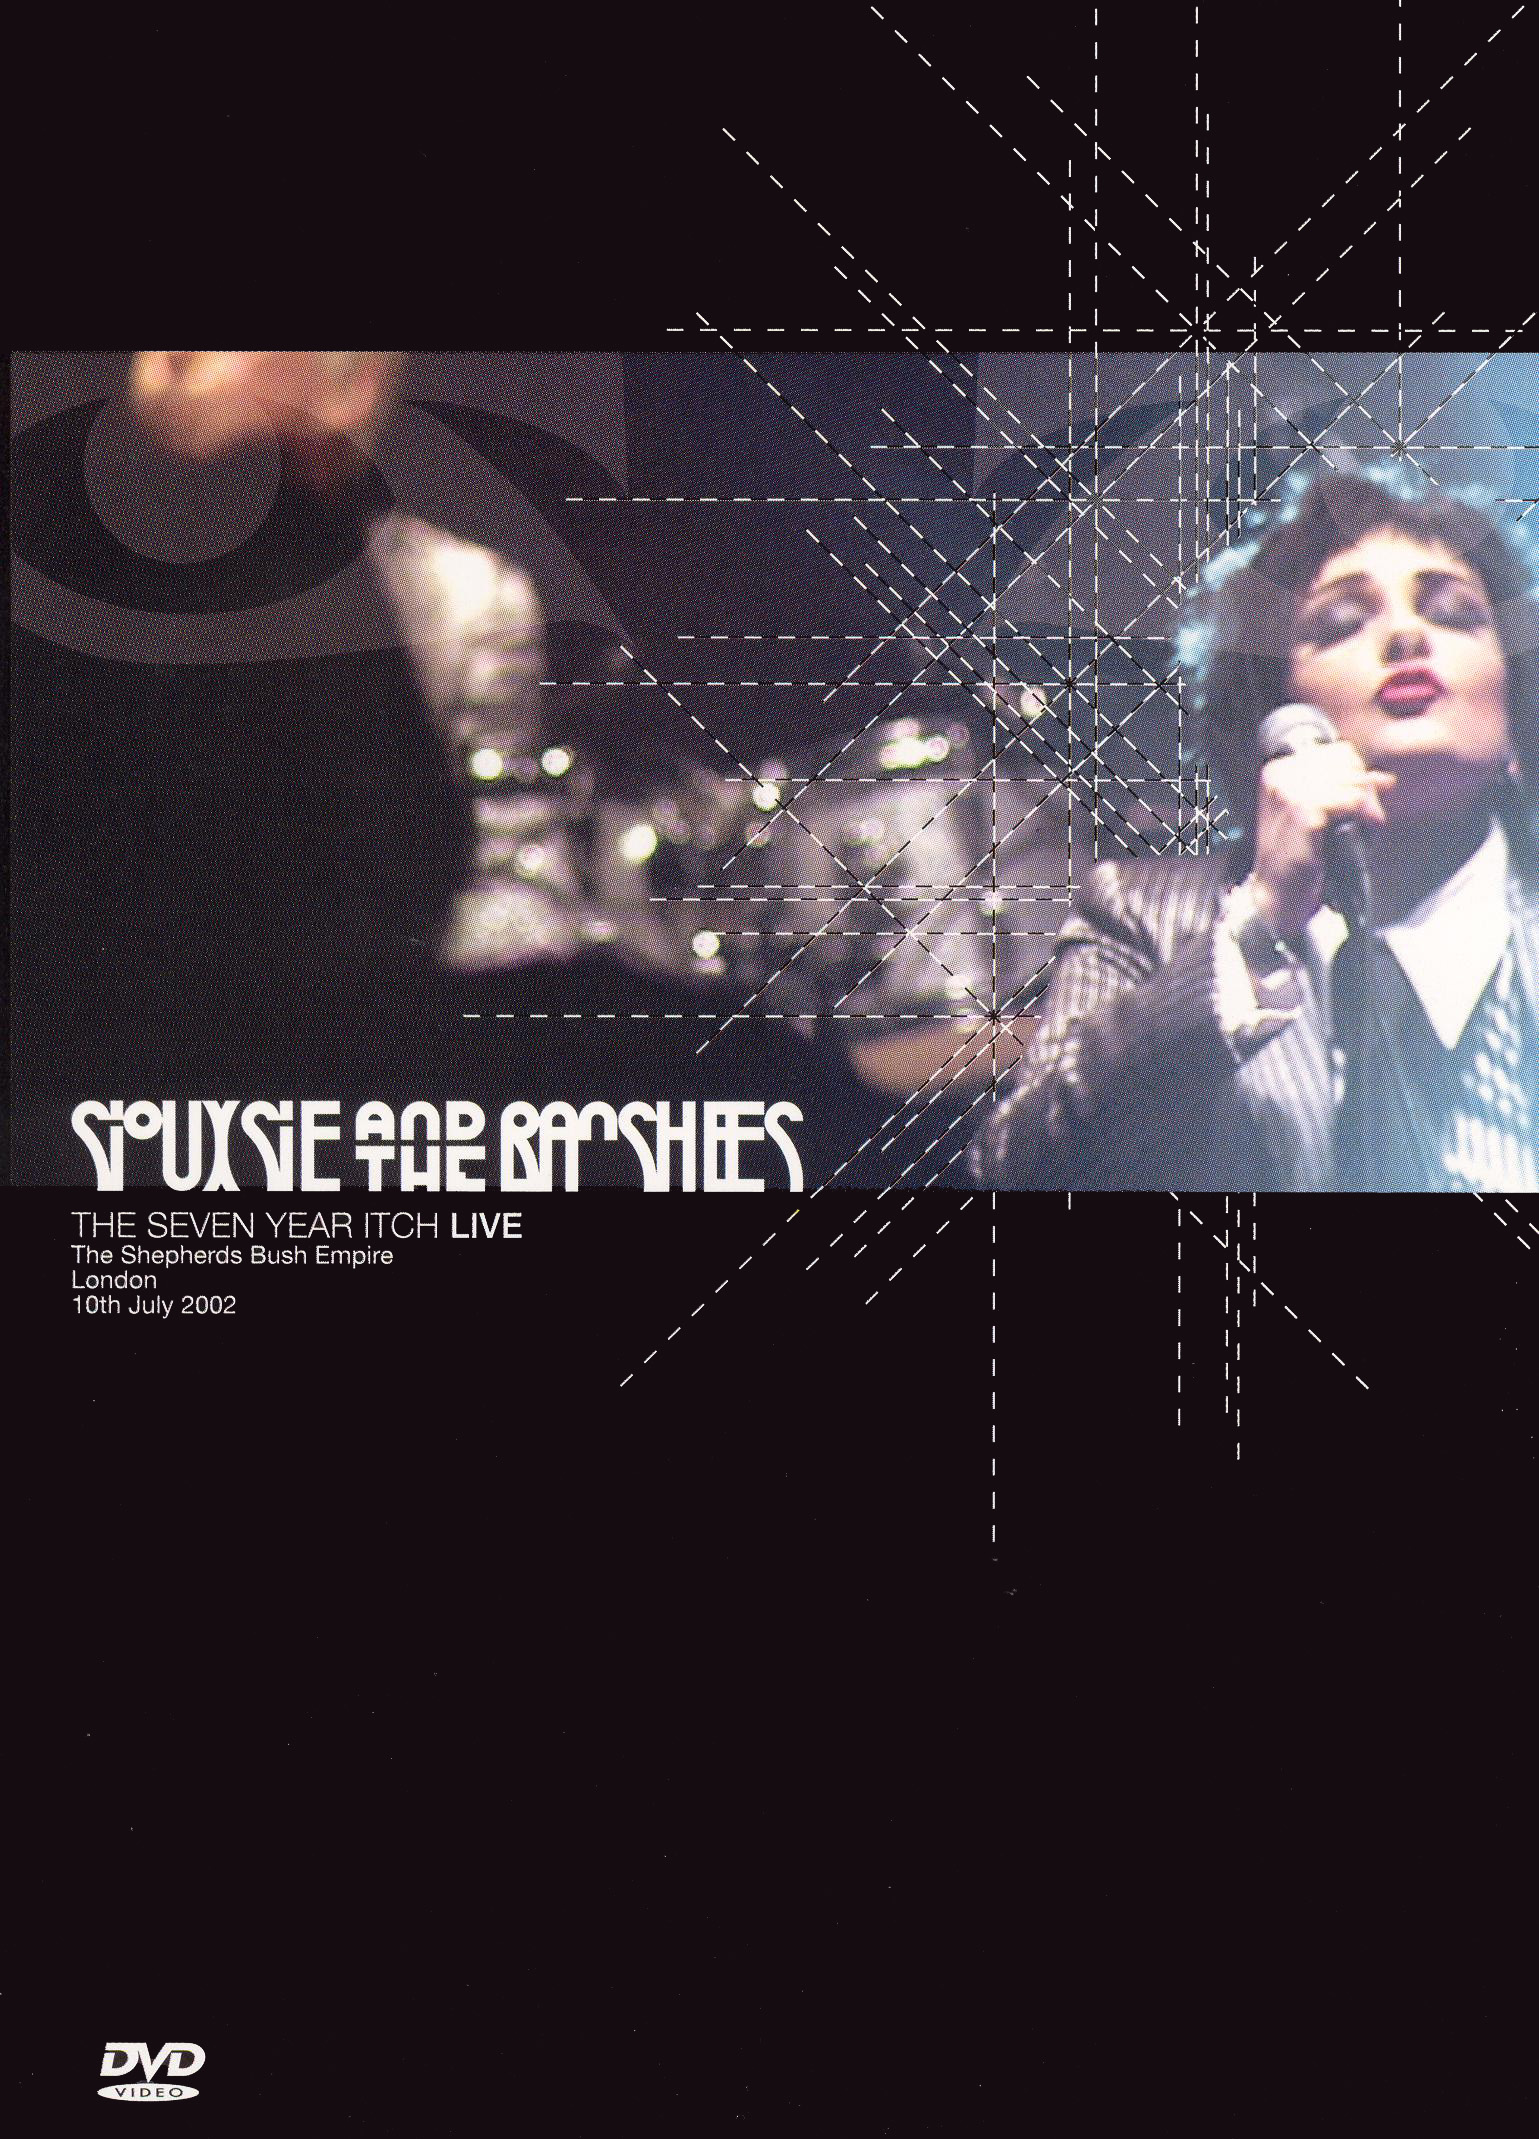 Siouxsie and the Banshees: Seven Year Itch